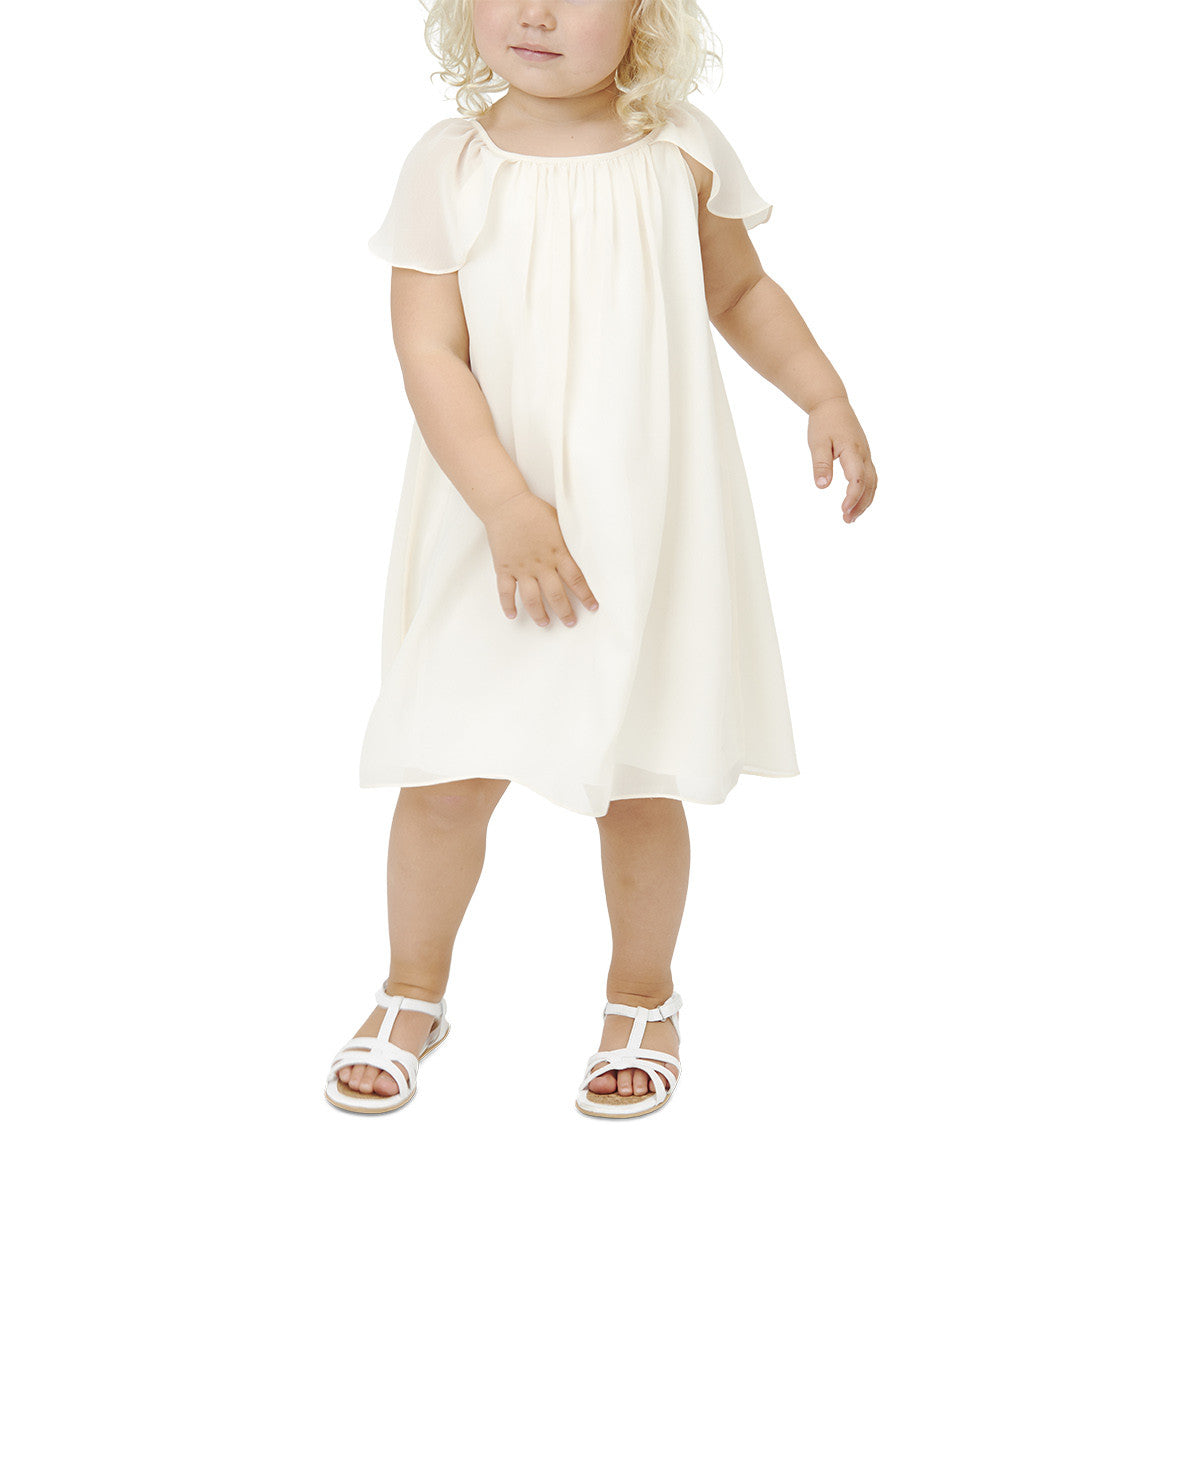 Joanna August Flower Girl Anabel Dress - Sample